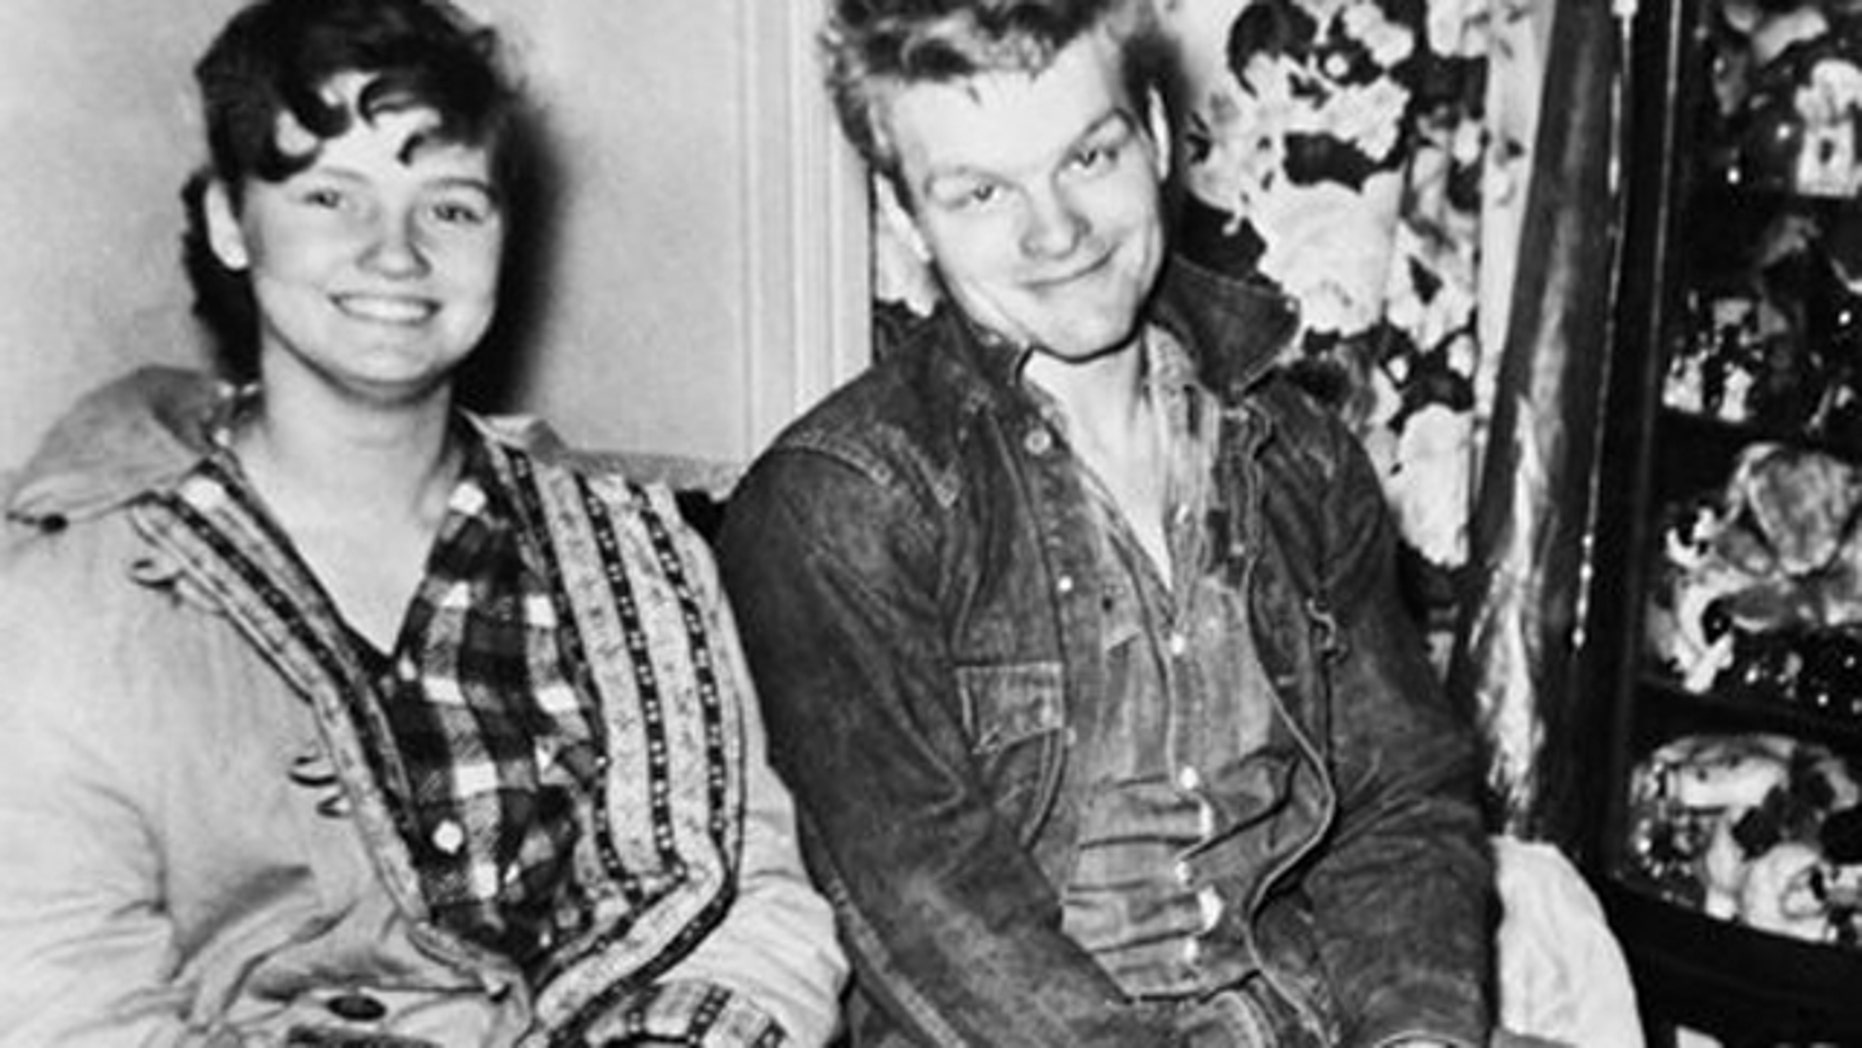 FILE - Charles Starkweather and Caril Fugate are shown in a photo released by police in 1958 when the teenagers were wanted for questioning in a killing spree that eventually claimed 11 lives in Nebraska and Wyoming.